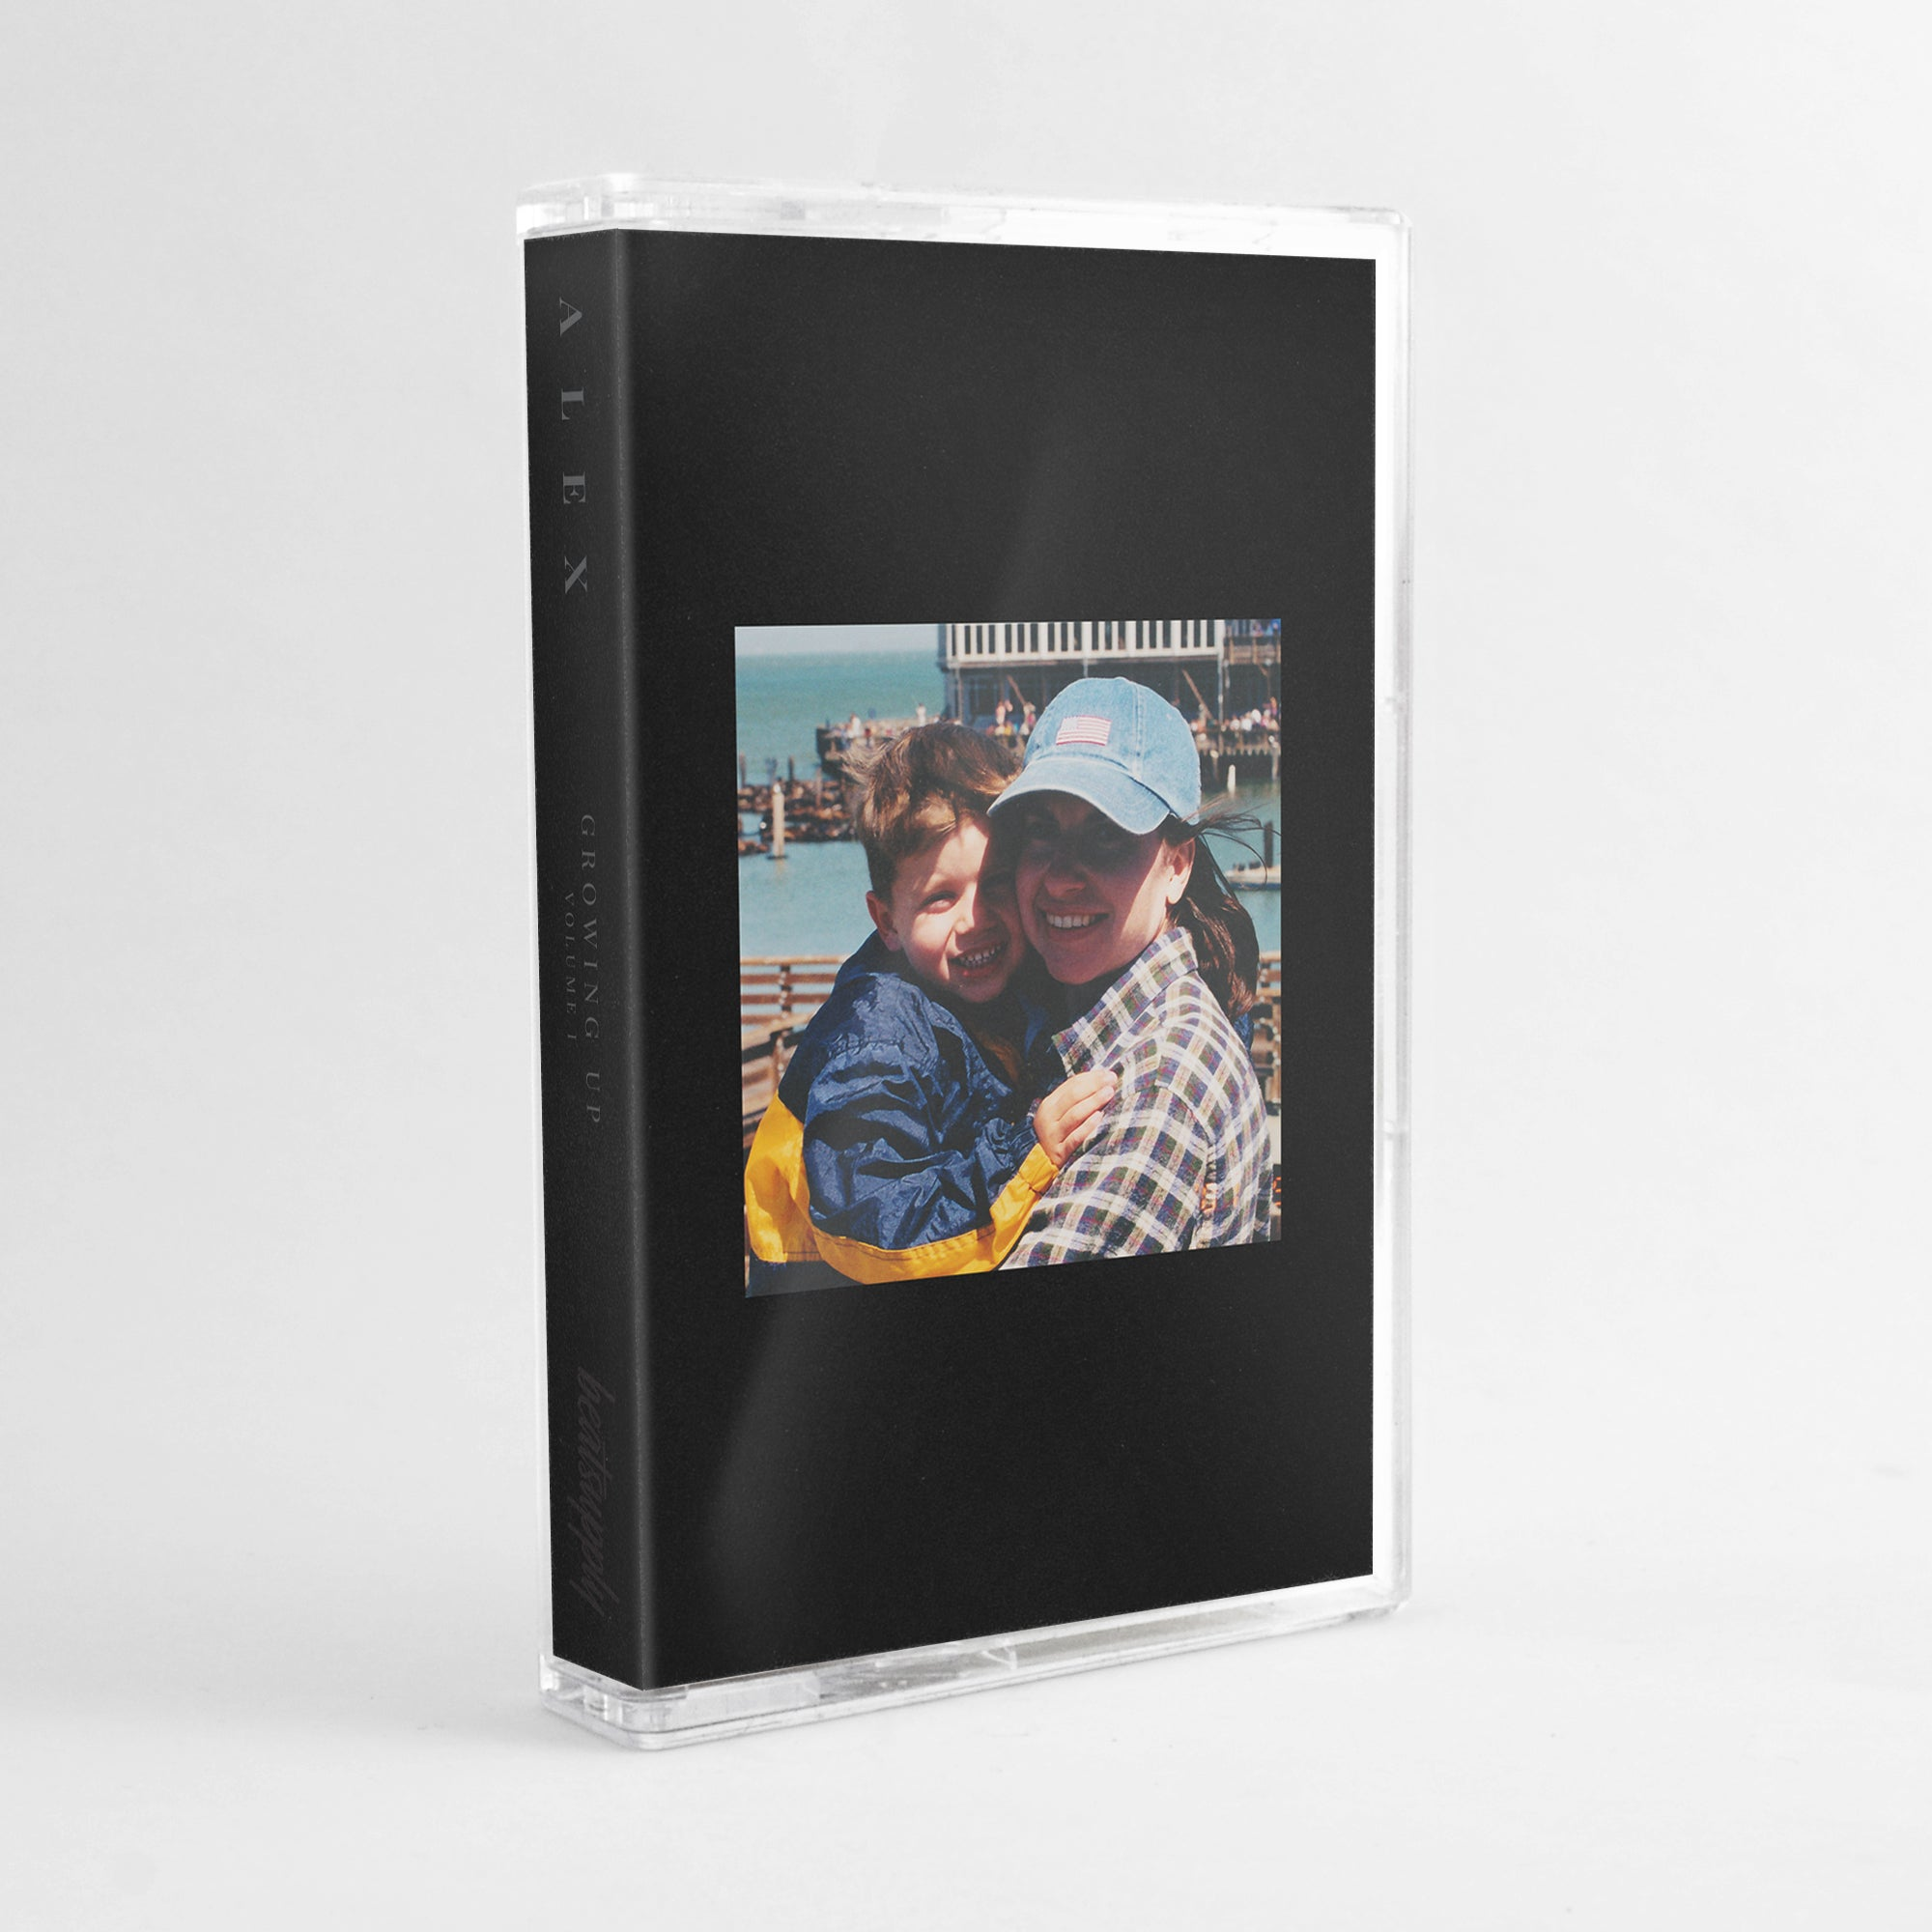 A L E X - Growing Up, Vol. 1 (Limited Edition Cassette)